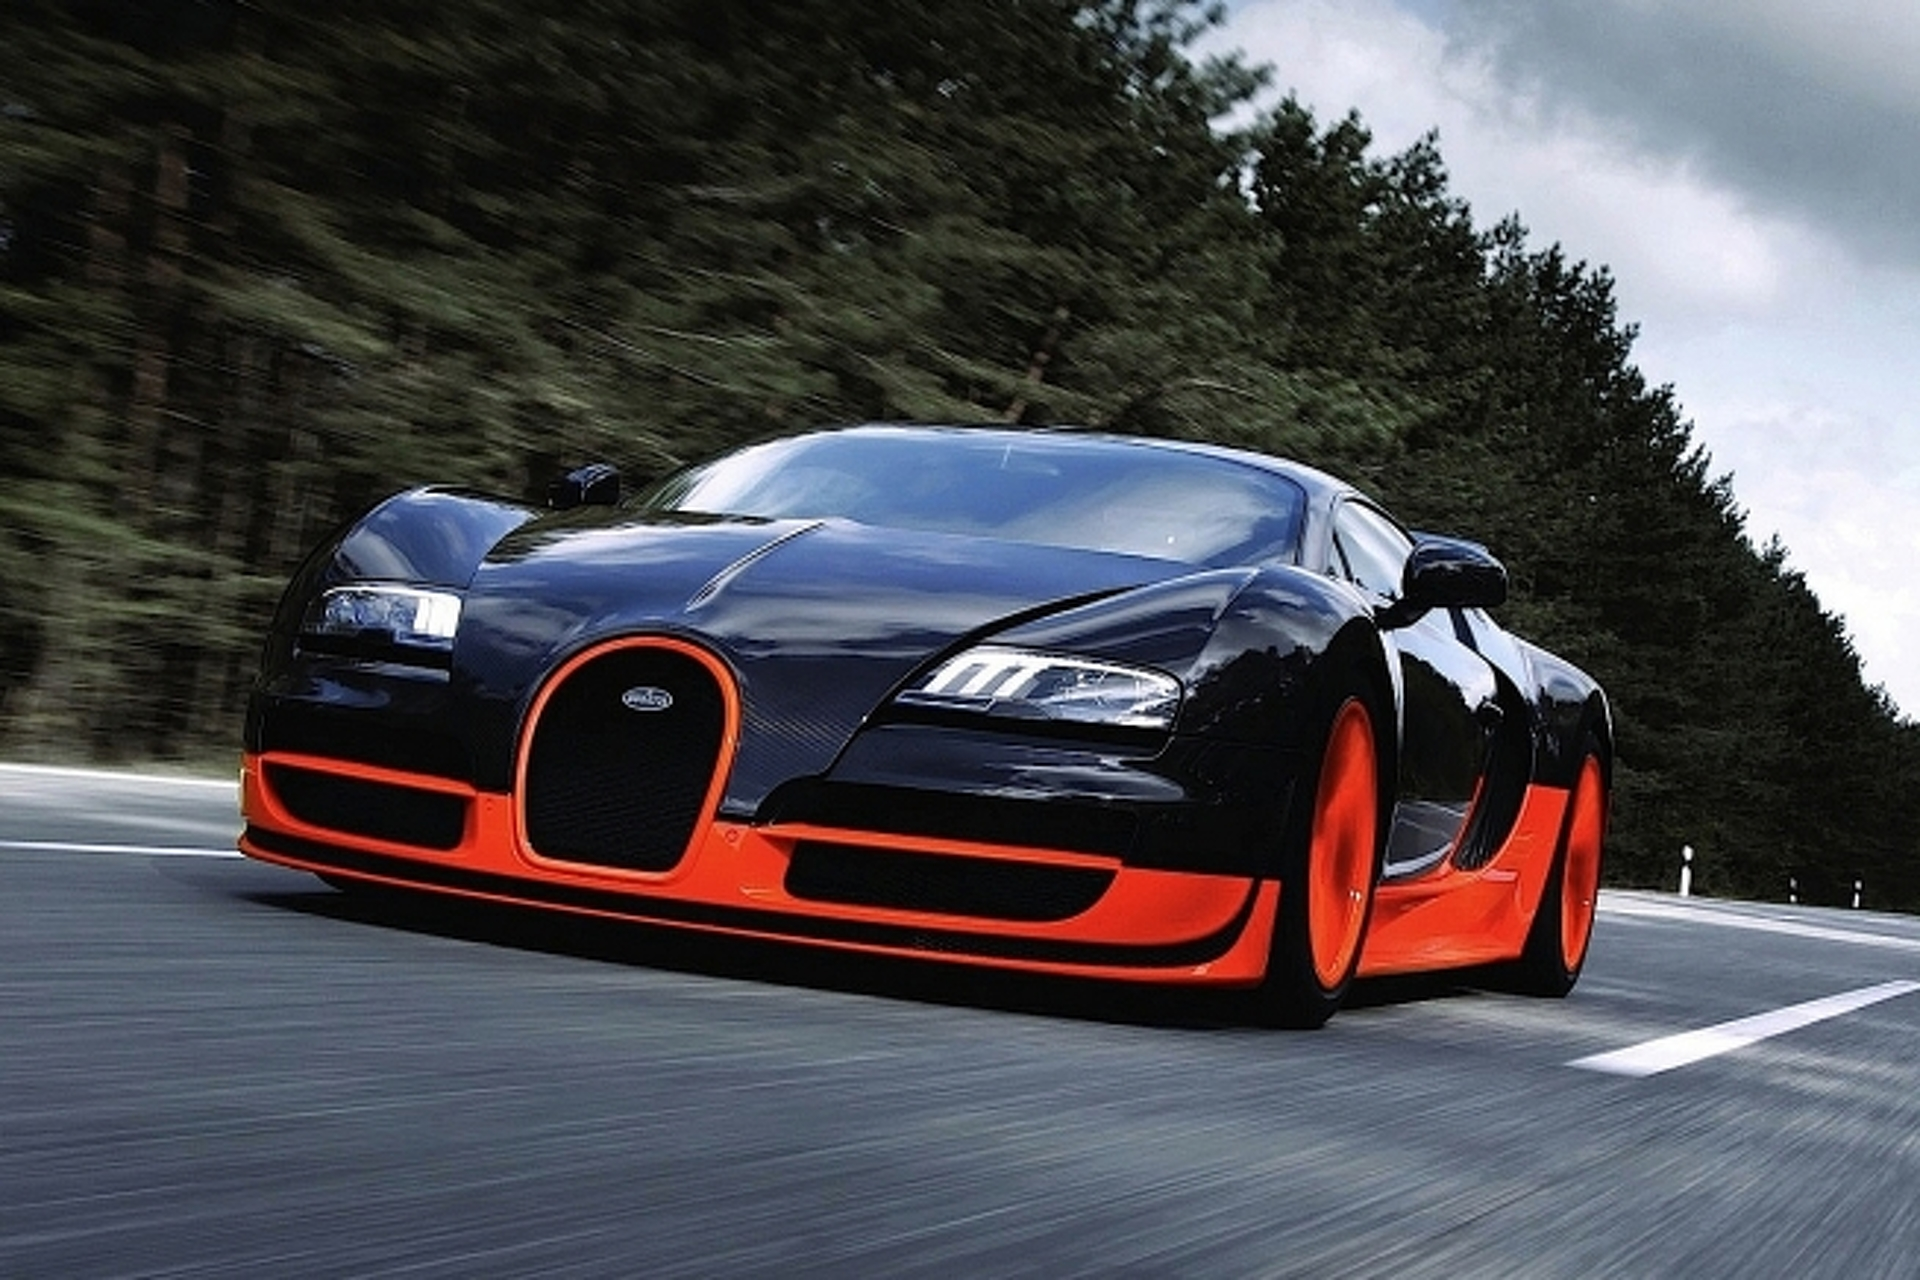 bugatti-veyron-super-super-sport-to-put-out-1600hp Exciting Bugatti Veyron Zero to Sixty Cars Trend